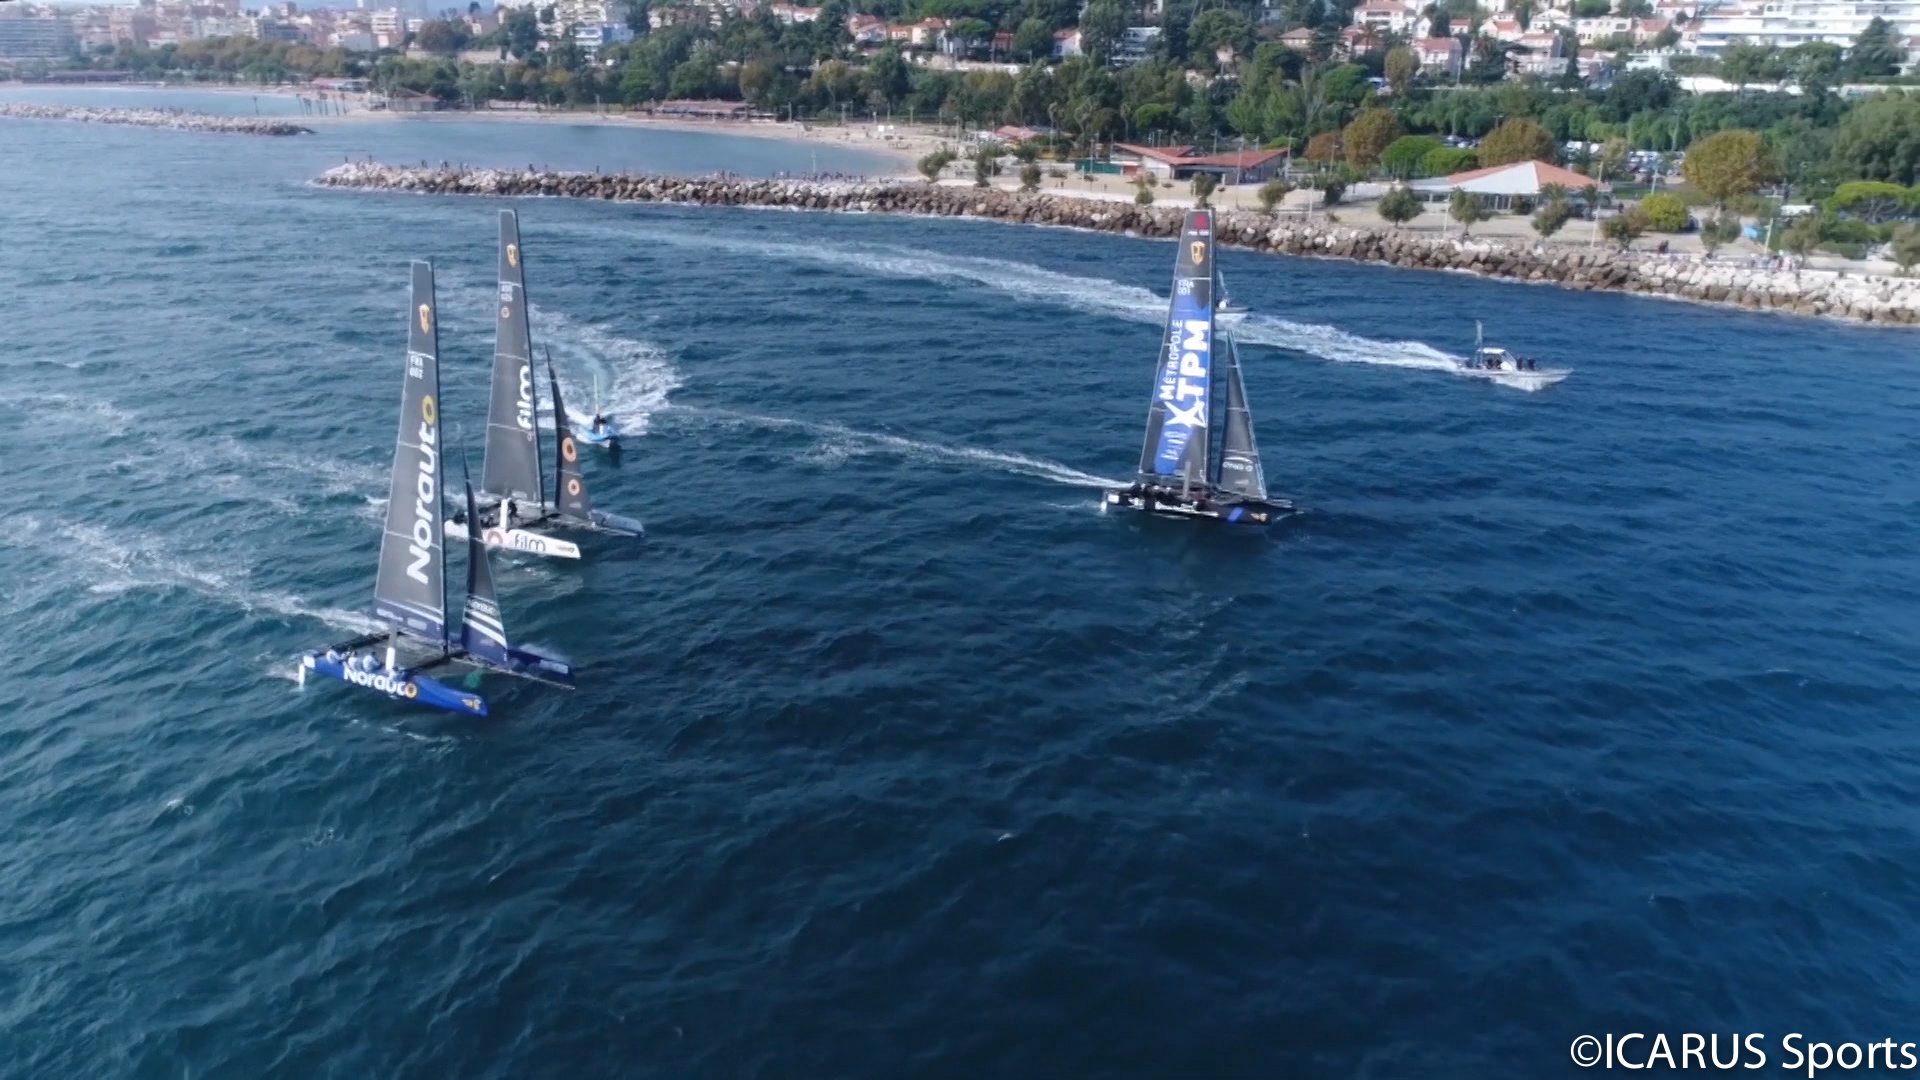 ICARUS SPORTS AND GC32 RACING TOUR SEAL PARTNERSHIP RENEWAL